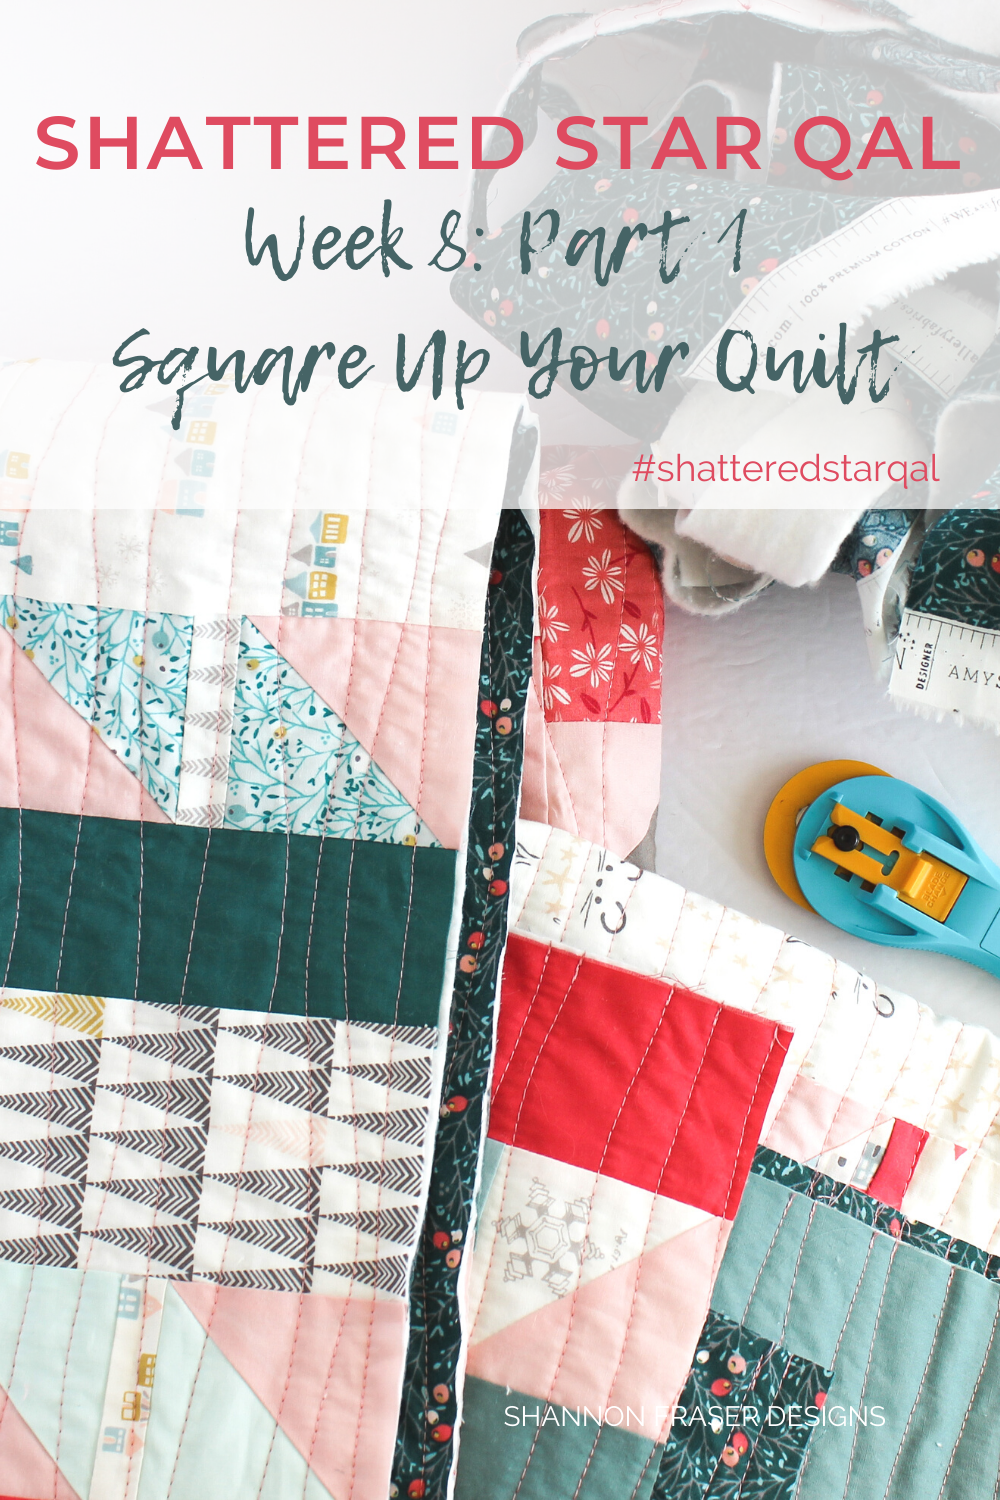 Holiday Shattered Star quilt freshly squared up | Shattered Star QAL Week 8: Part 1: How to square up your quilt | Shannon Fraser Designs #modernquilt